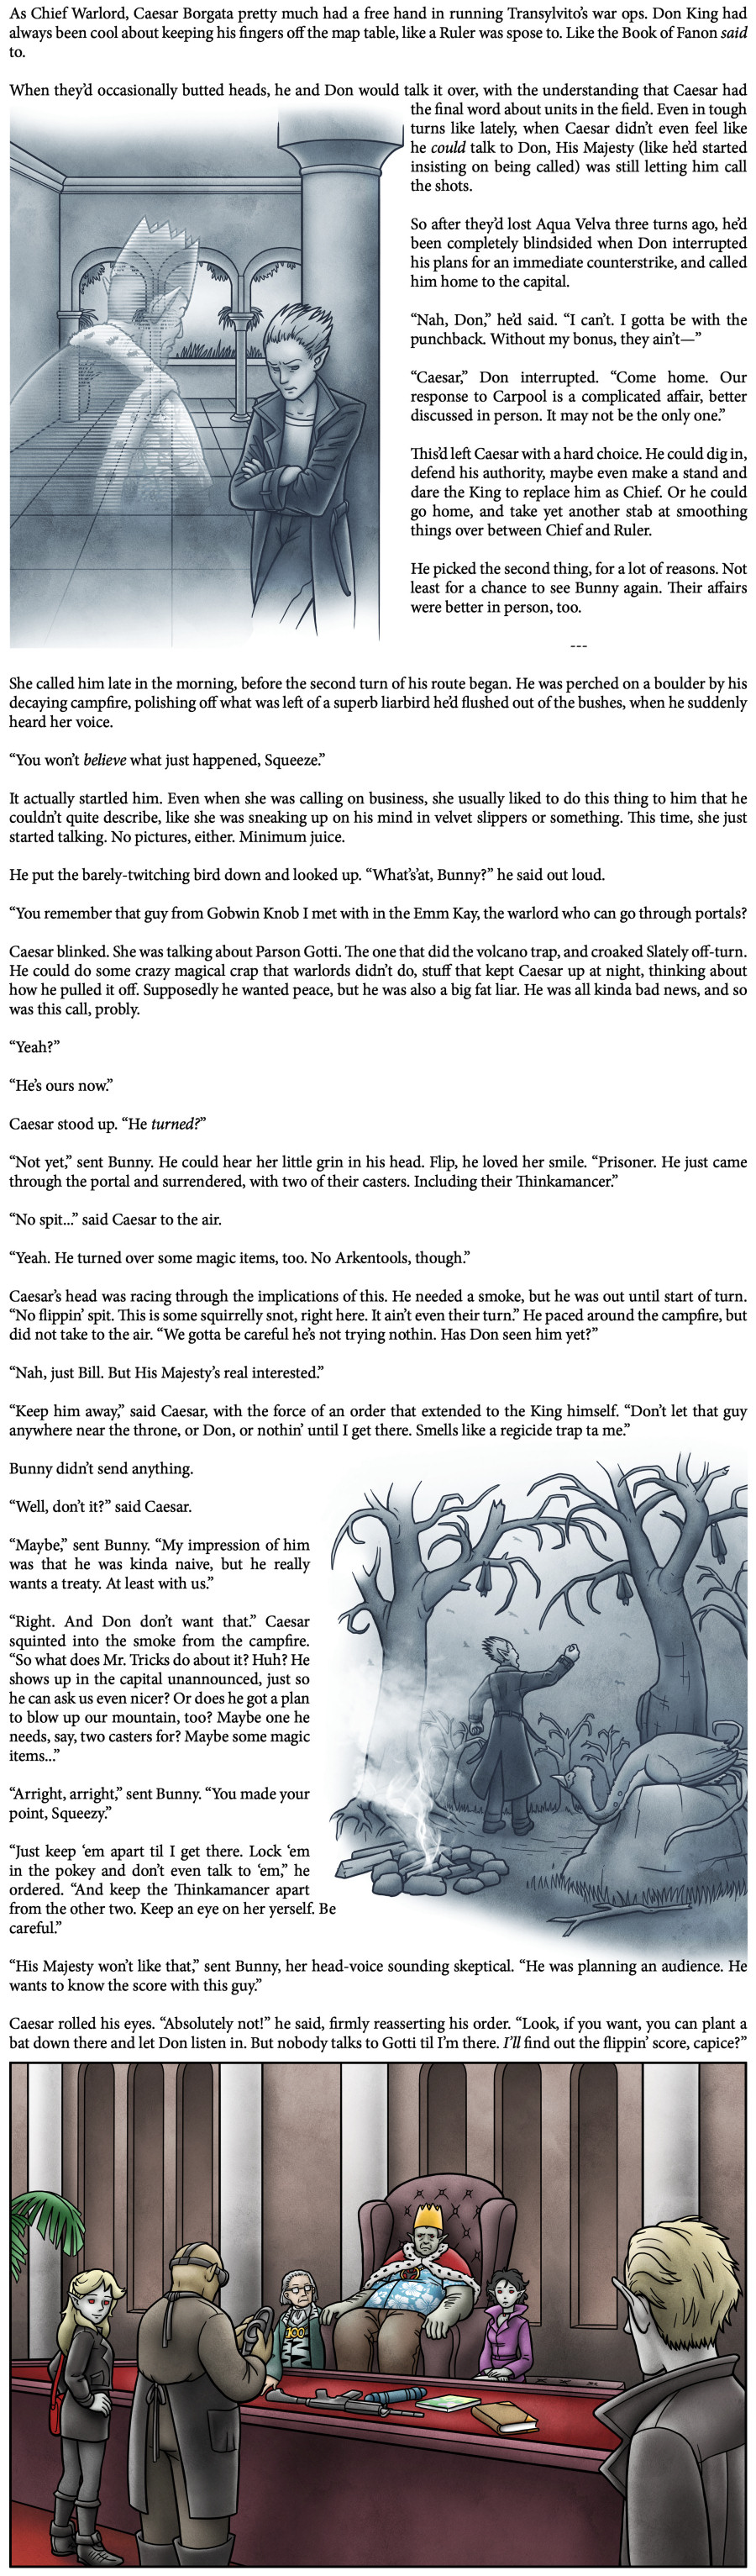 Comic - Book 4 - Page 1 - Prologue 1